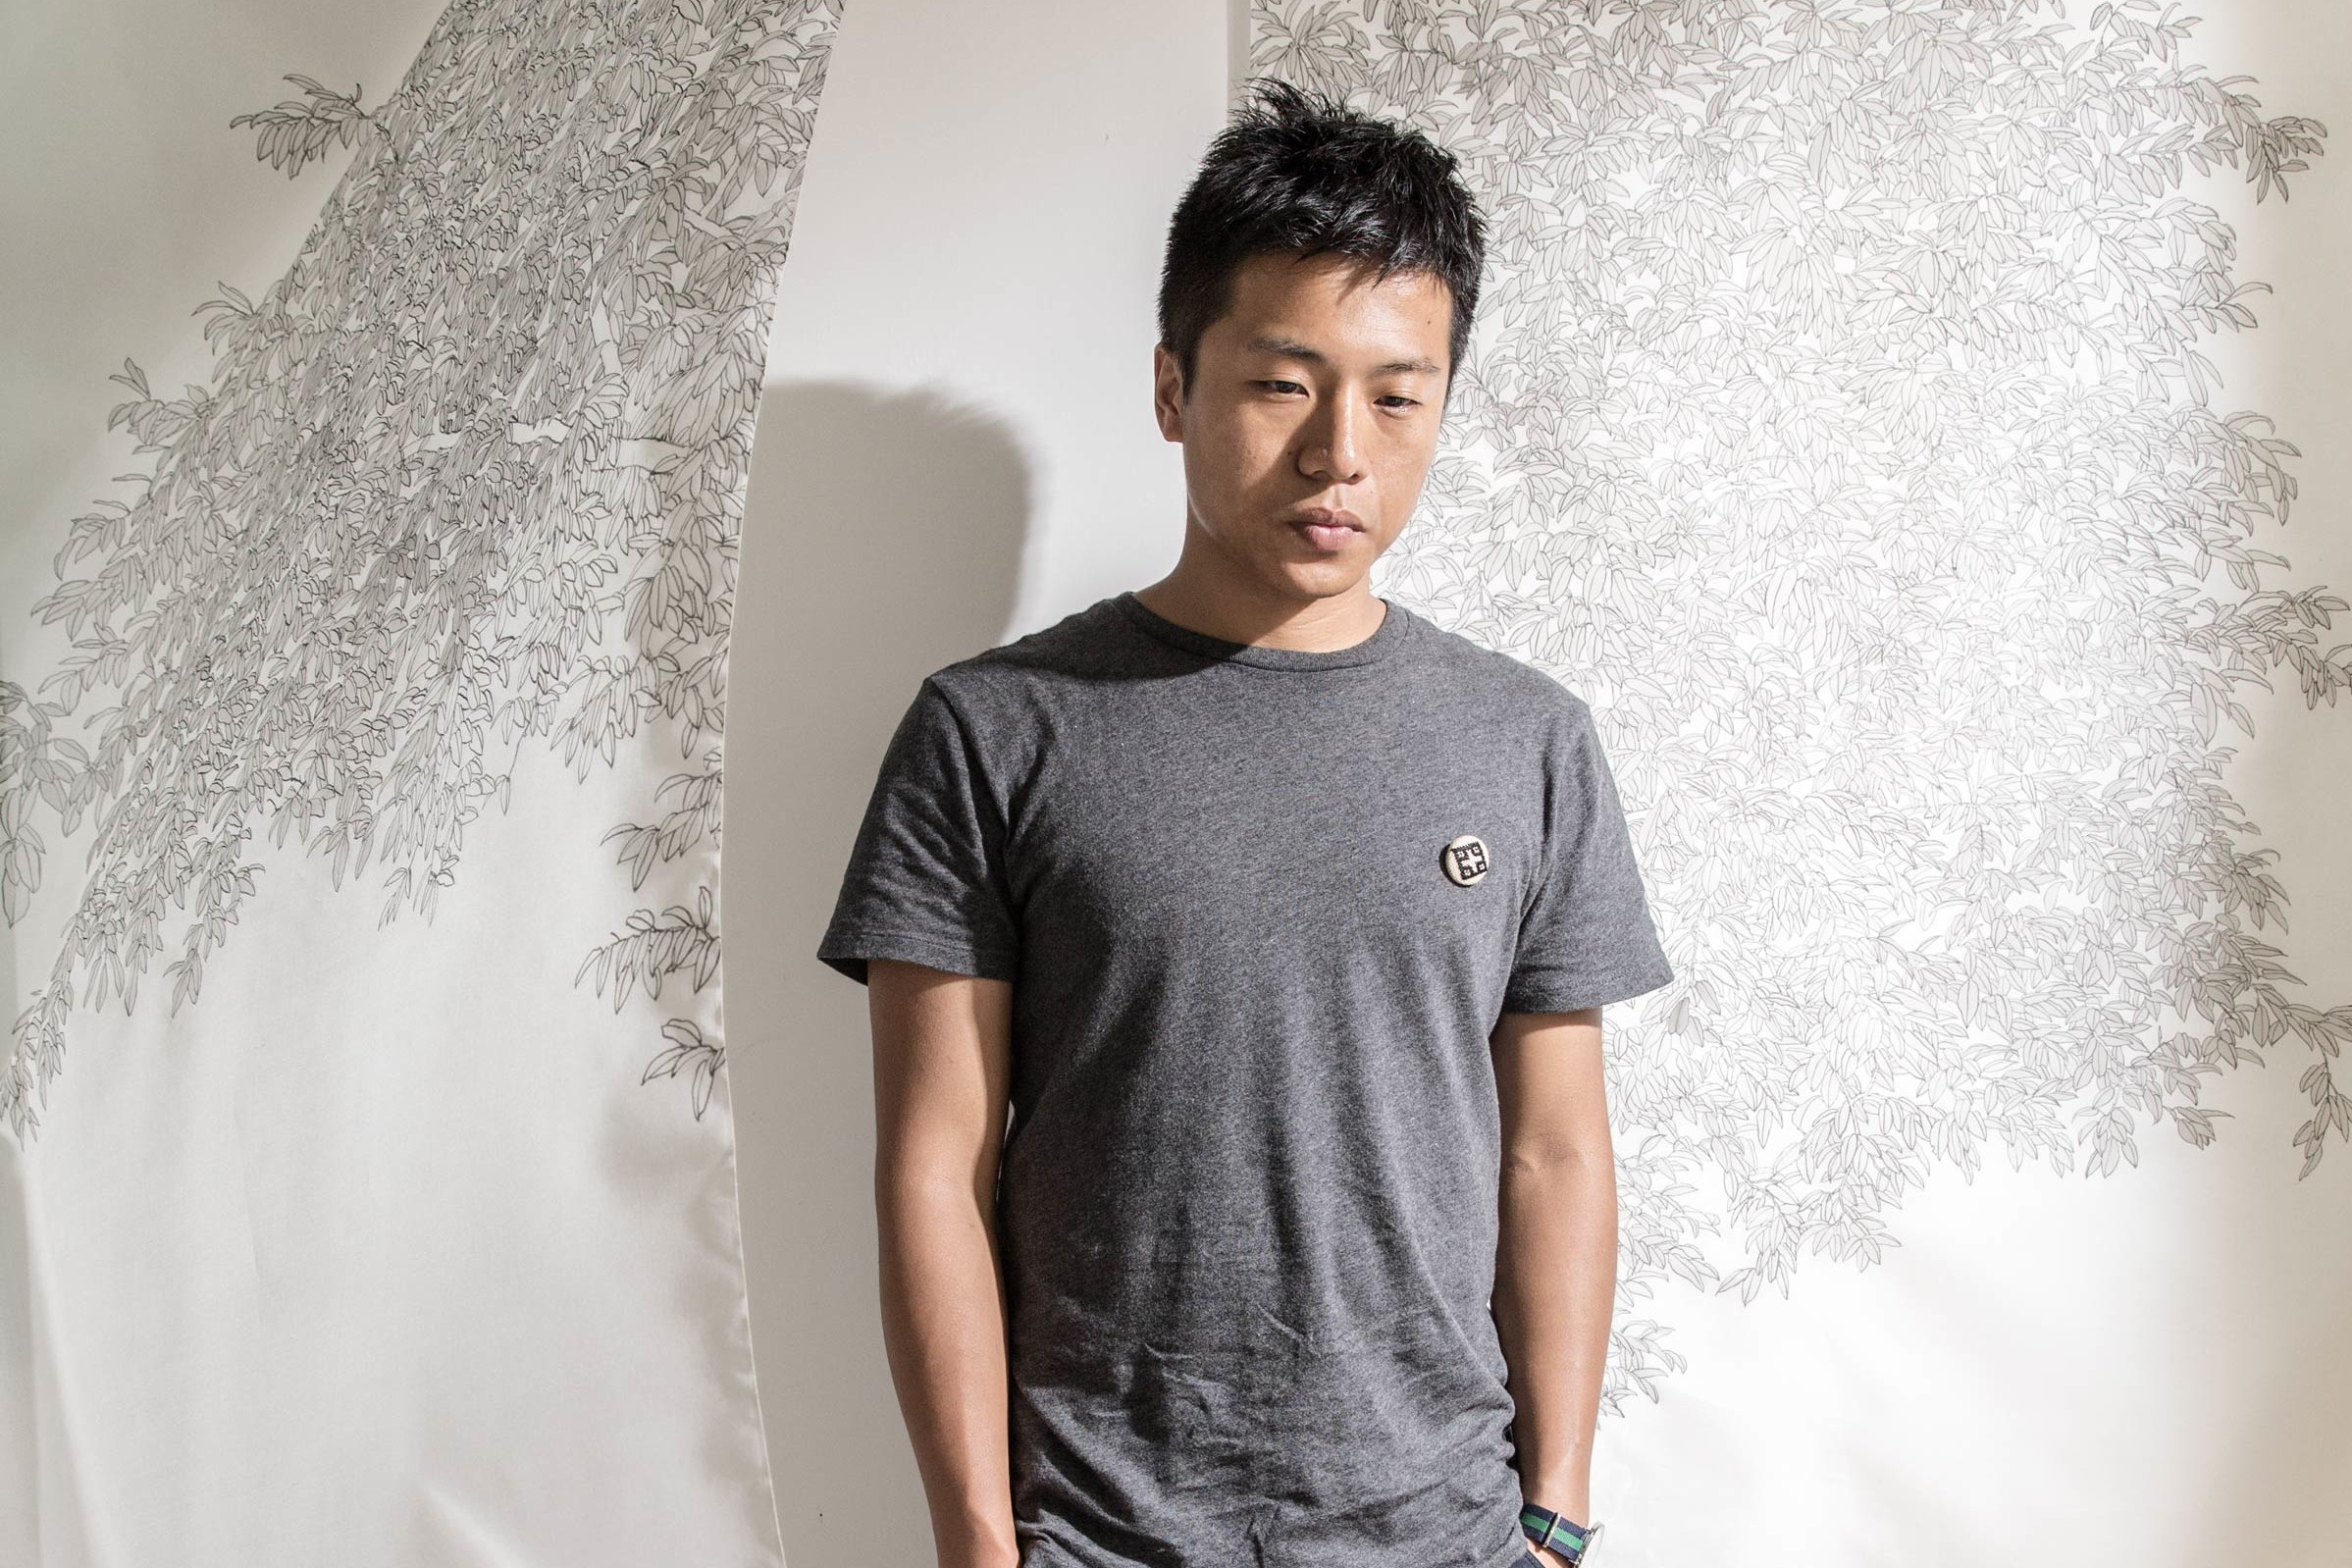 The Making of Frank Tang's Exhibition At K11 Art Foundation